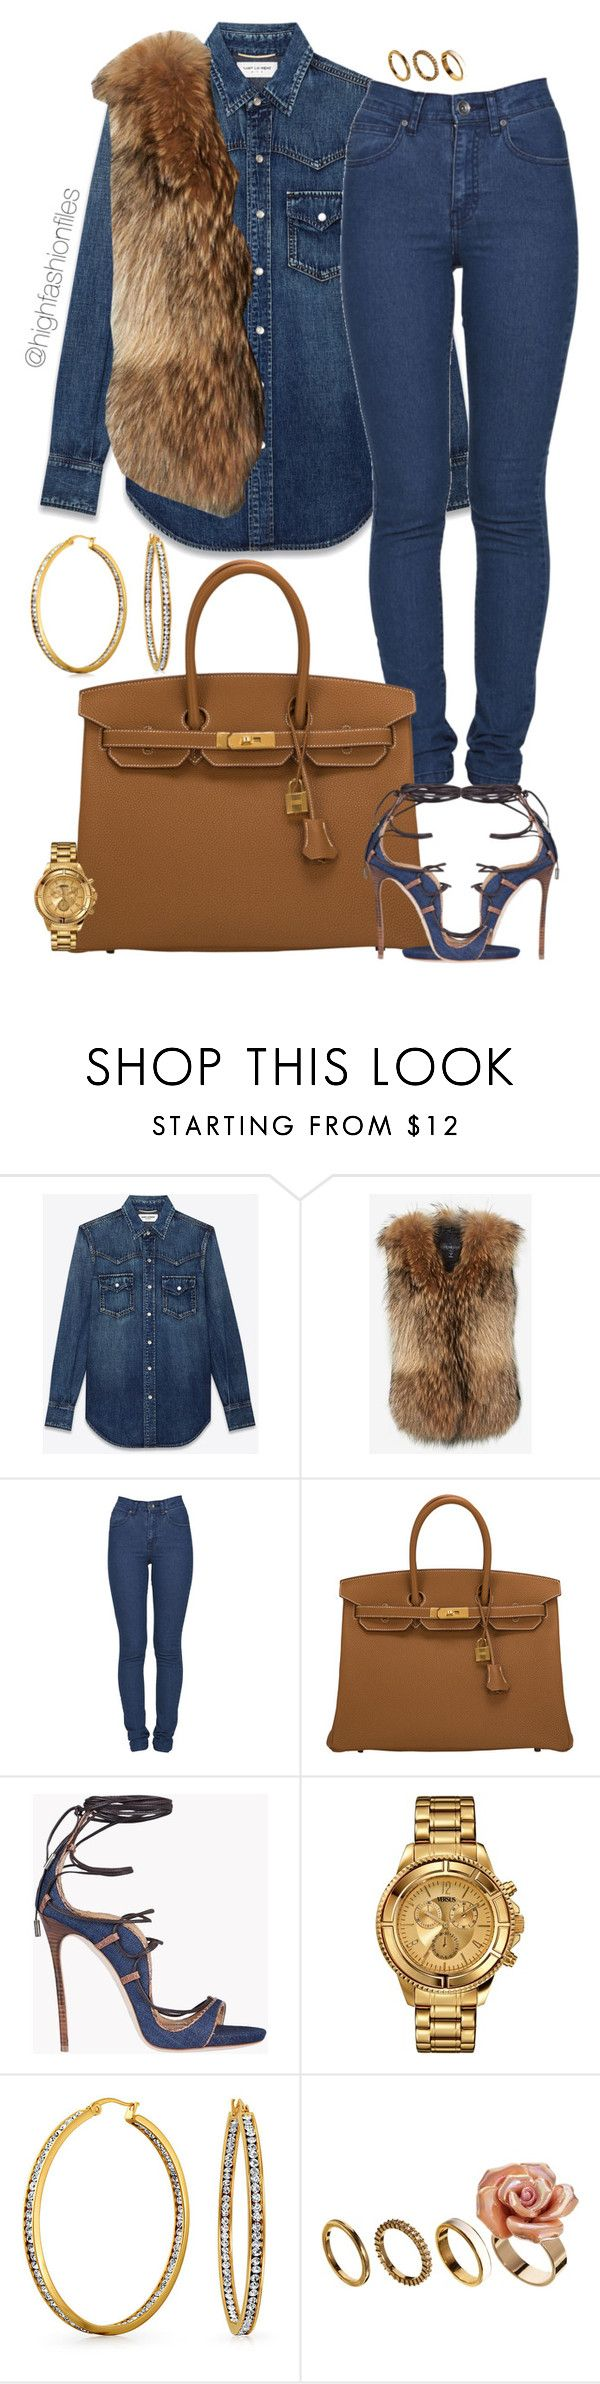 """""""Untitled #2688"""" by highfashionfiles ❤ liked on Polyvore featuring Yves Saint Laurent, Adrienne Landau, Dr. Denim, Hermès, Dsquared2, Versus, Bling Jewelry and ALDO"""